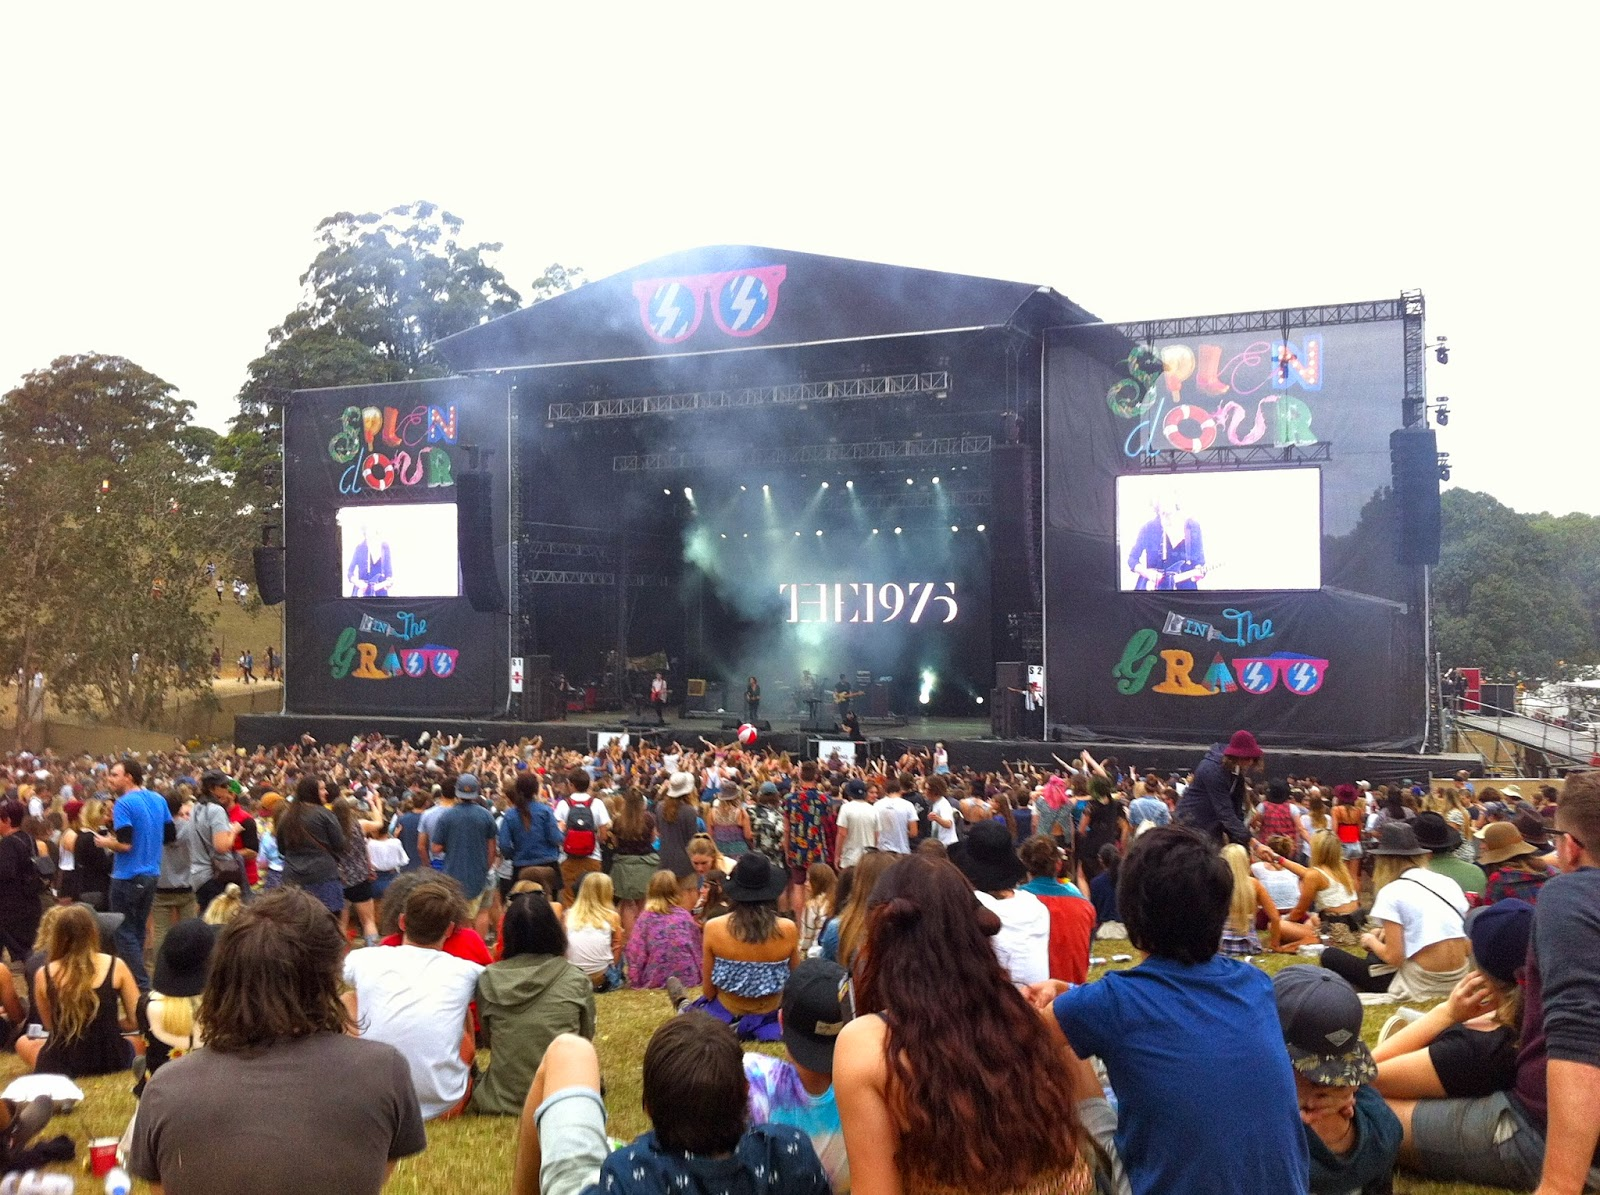 The 1975 at Splendour in the Grass, Byron Bay / July 2014